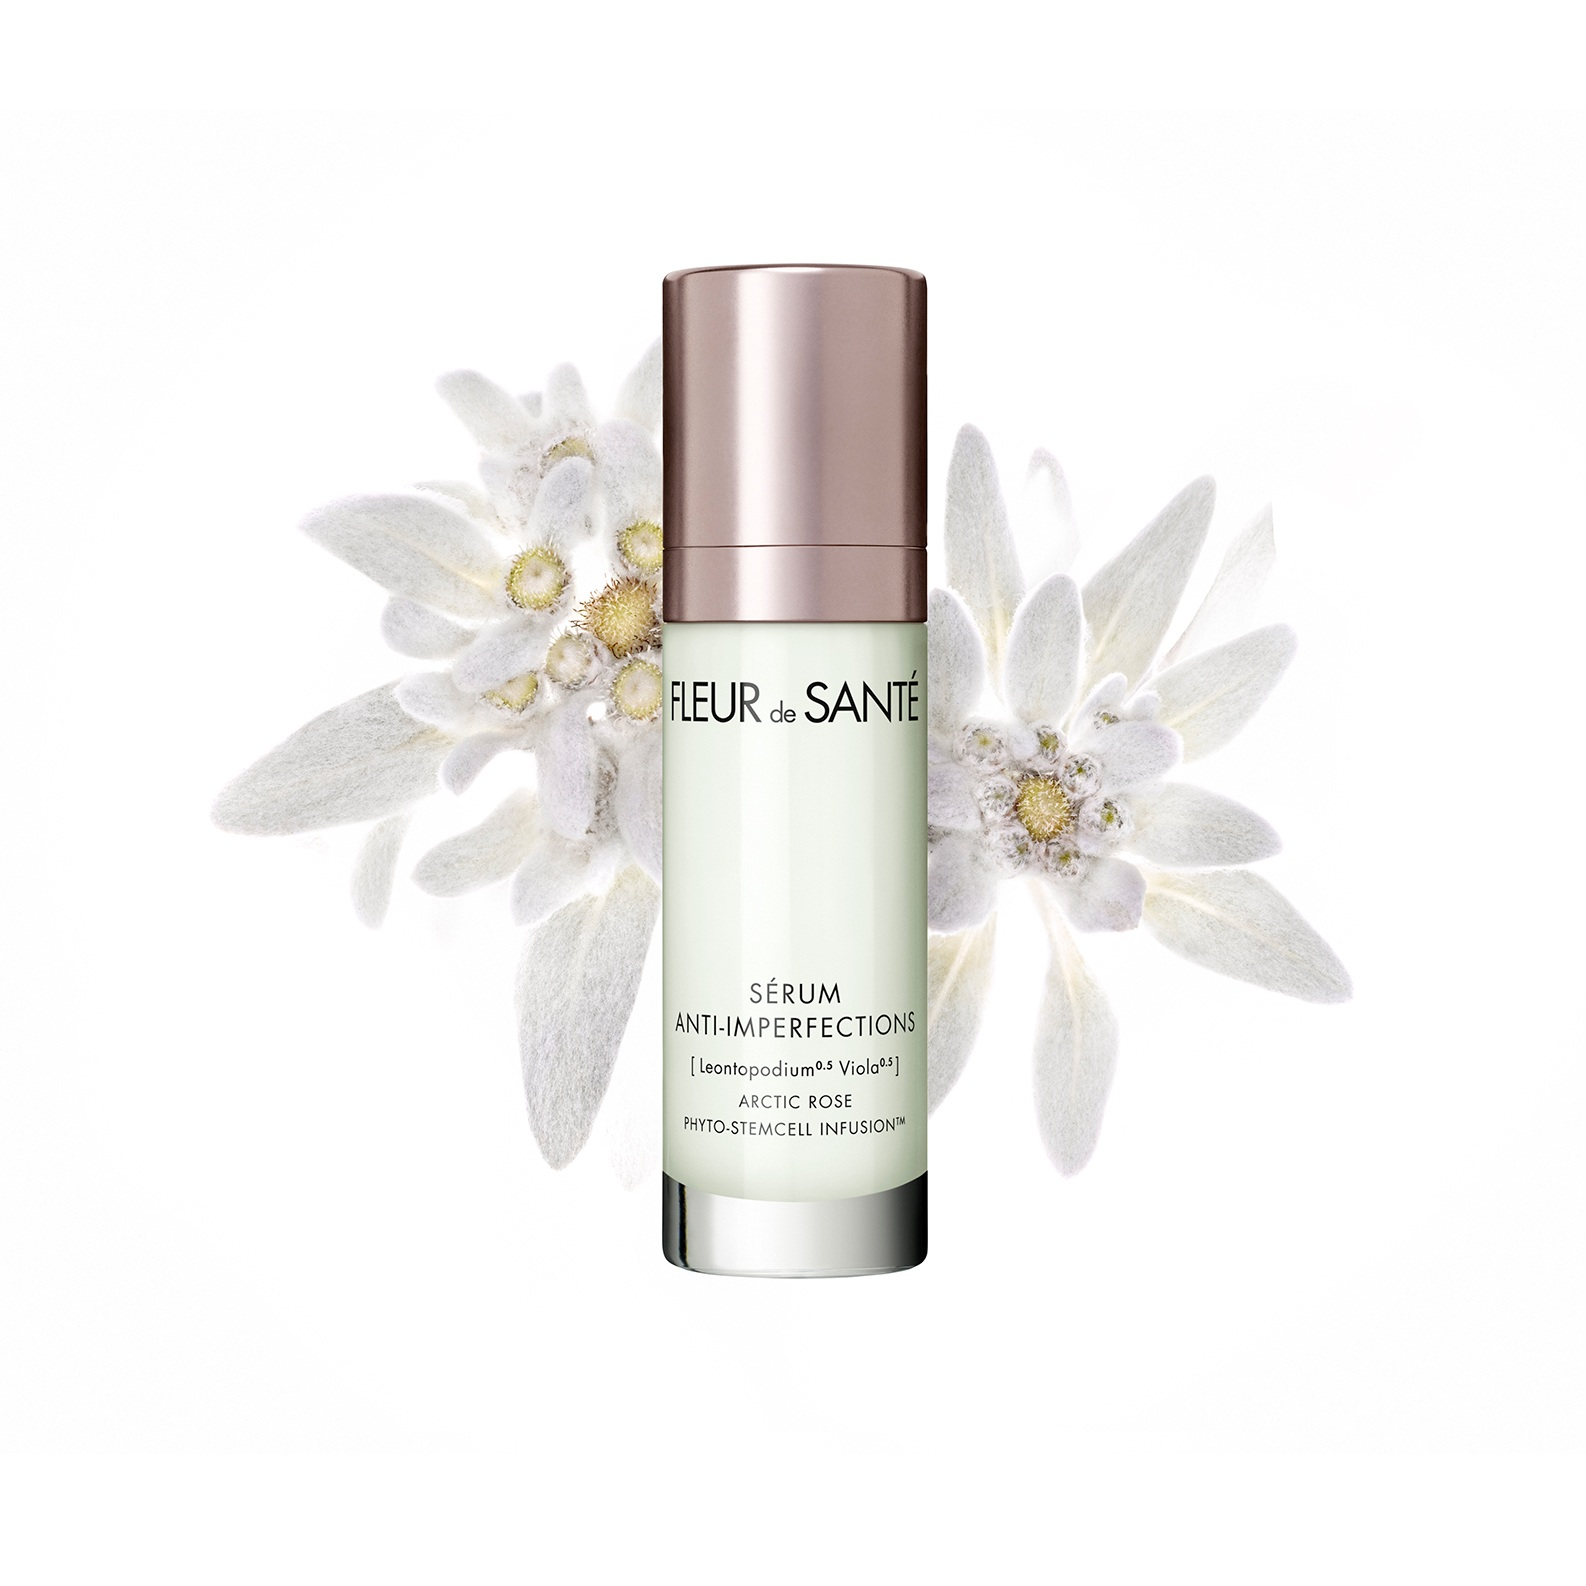 POWER ANTI-BLEMISH SKIN SMOOTHING SERUM - Targeted treatment to help achieve a perfectly flawless look without blemishes and imperfections. The actives of [Viola Asteraceae] Arctic Rose Phyto-StemCell Infusion™ target red spots for healthier looking skin. The oil-free, ultra-smooth texture does not clog pores.